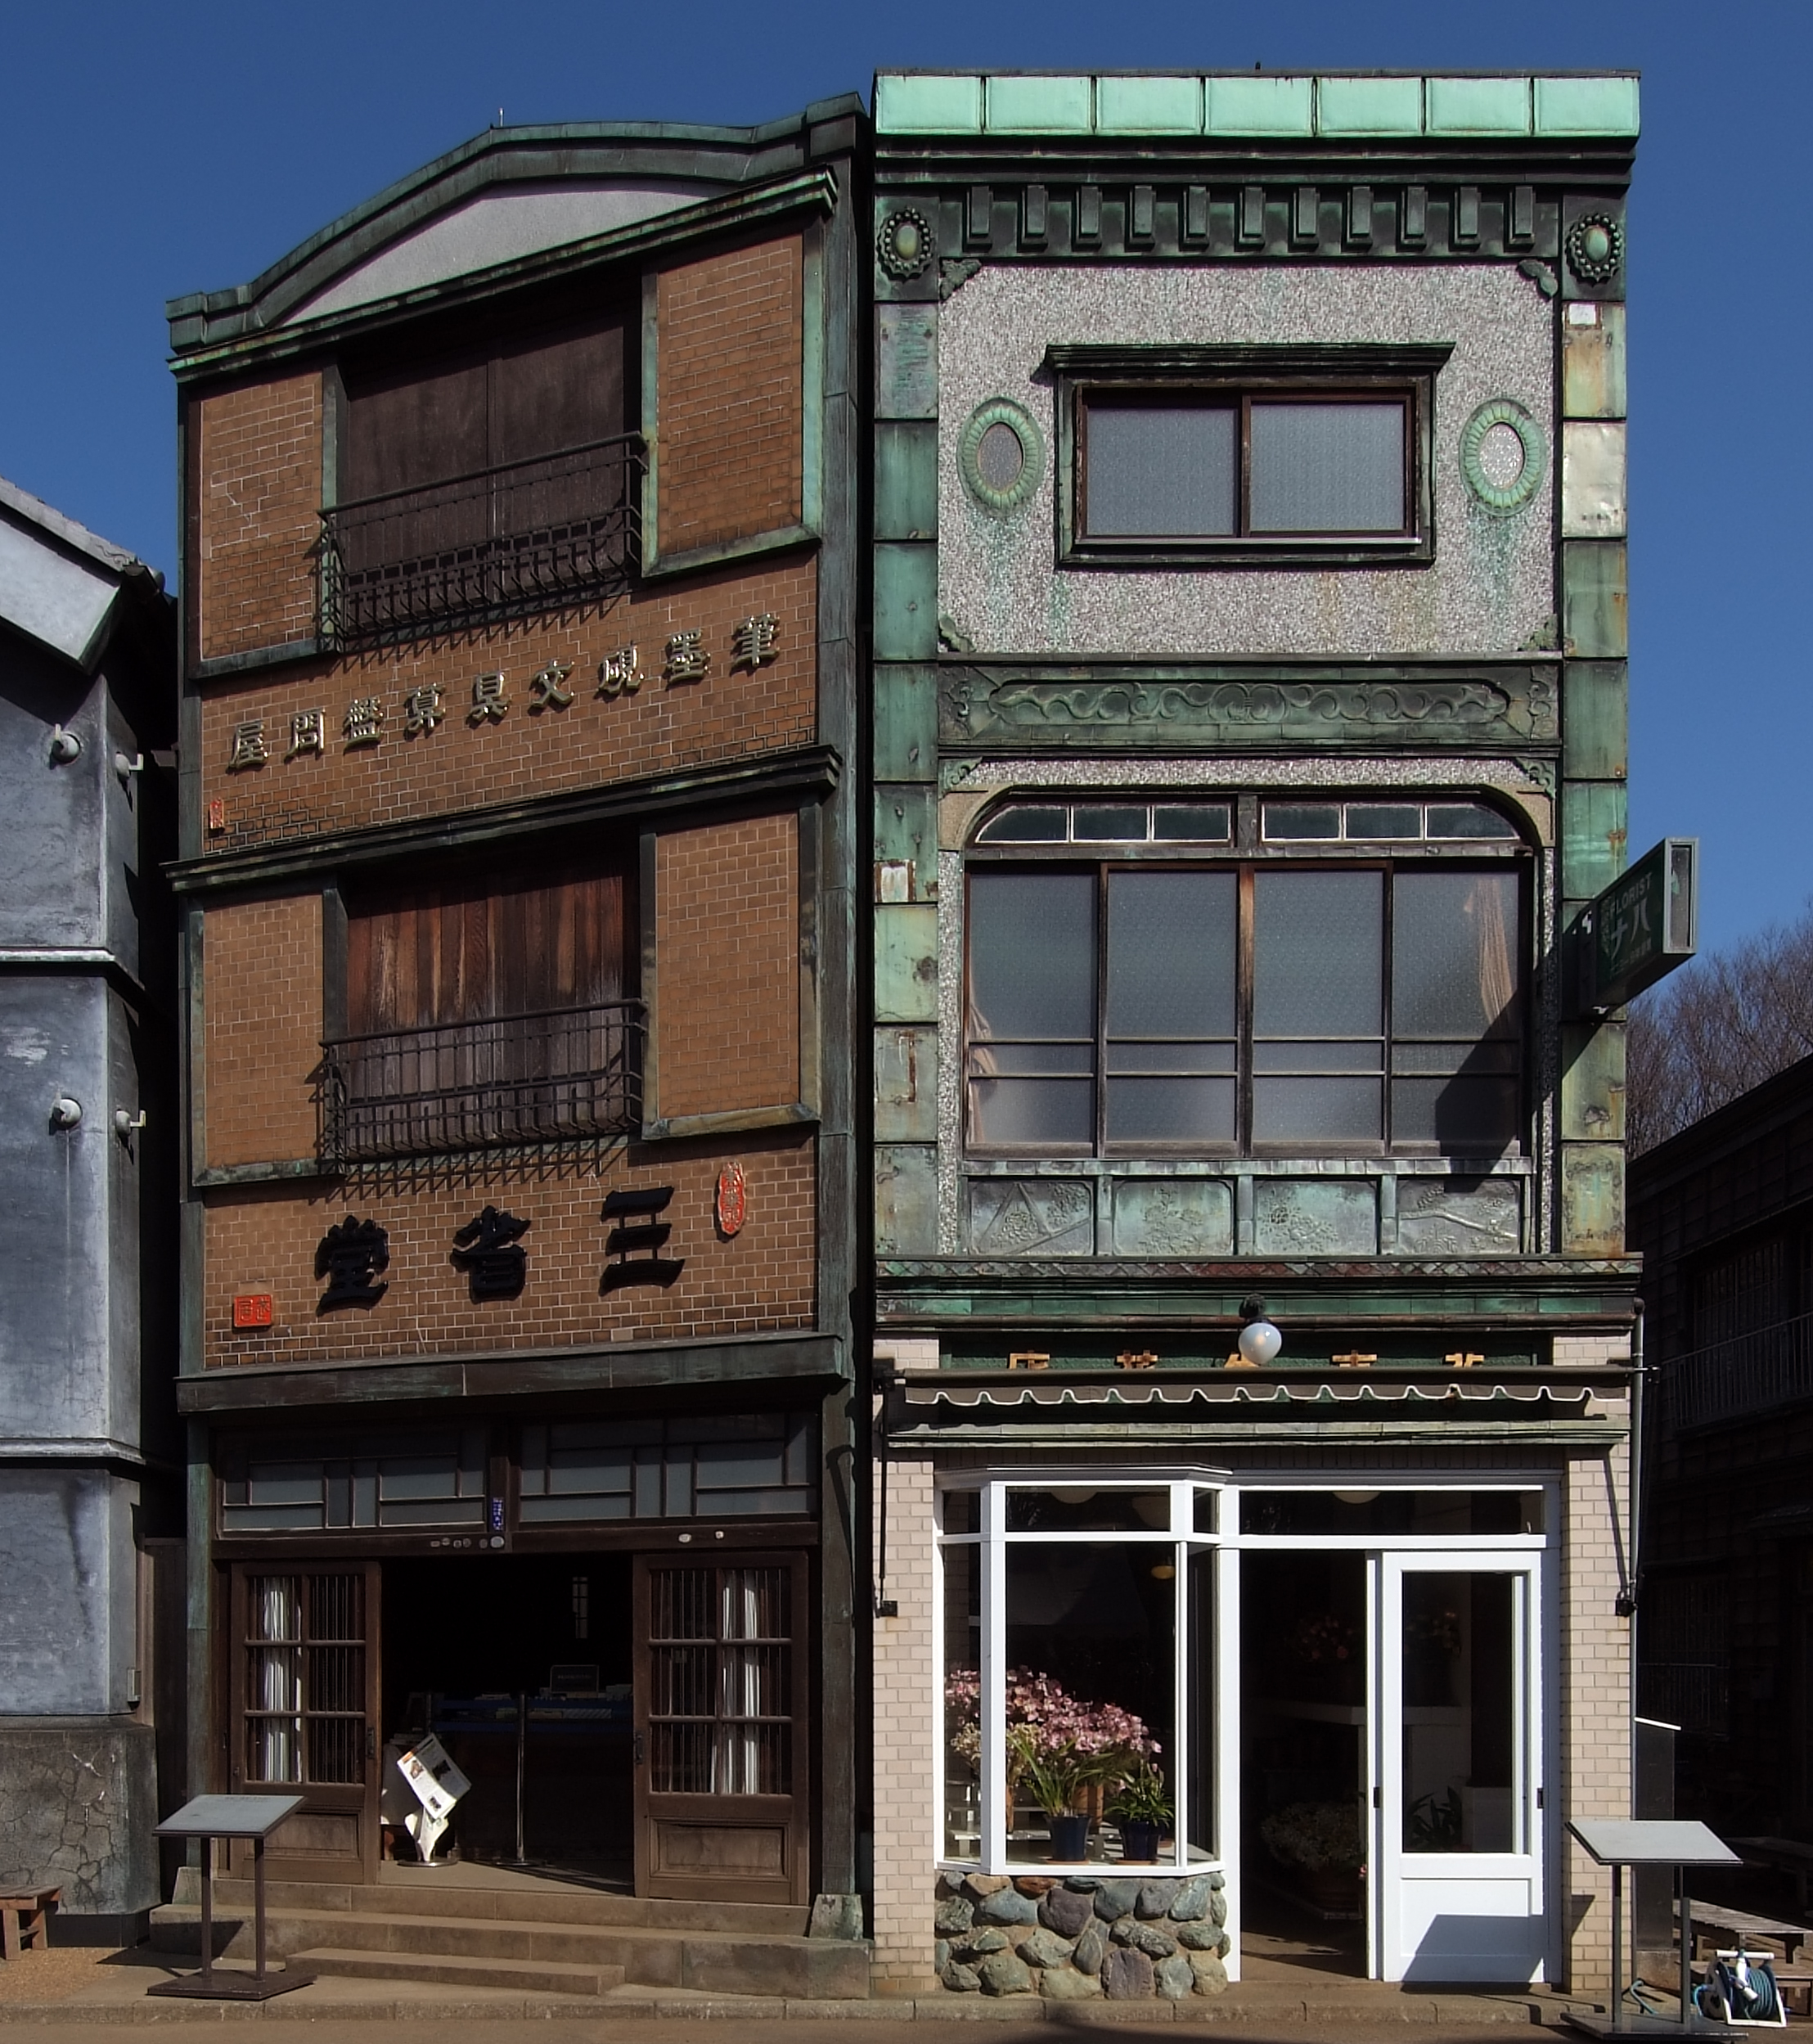 http://upload.wikimedia.org/wikipedia/commons/b/b1/Takei_Sanshodo_%26_Hanaichi_Flower_Shop.jpg